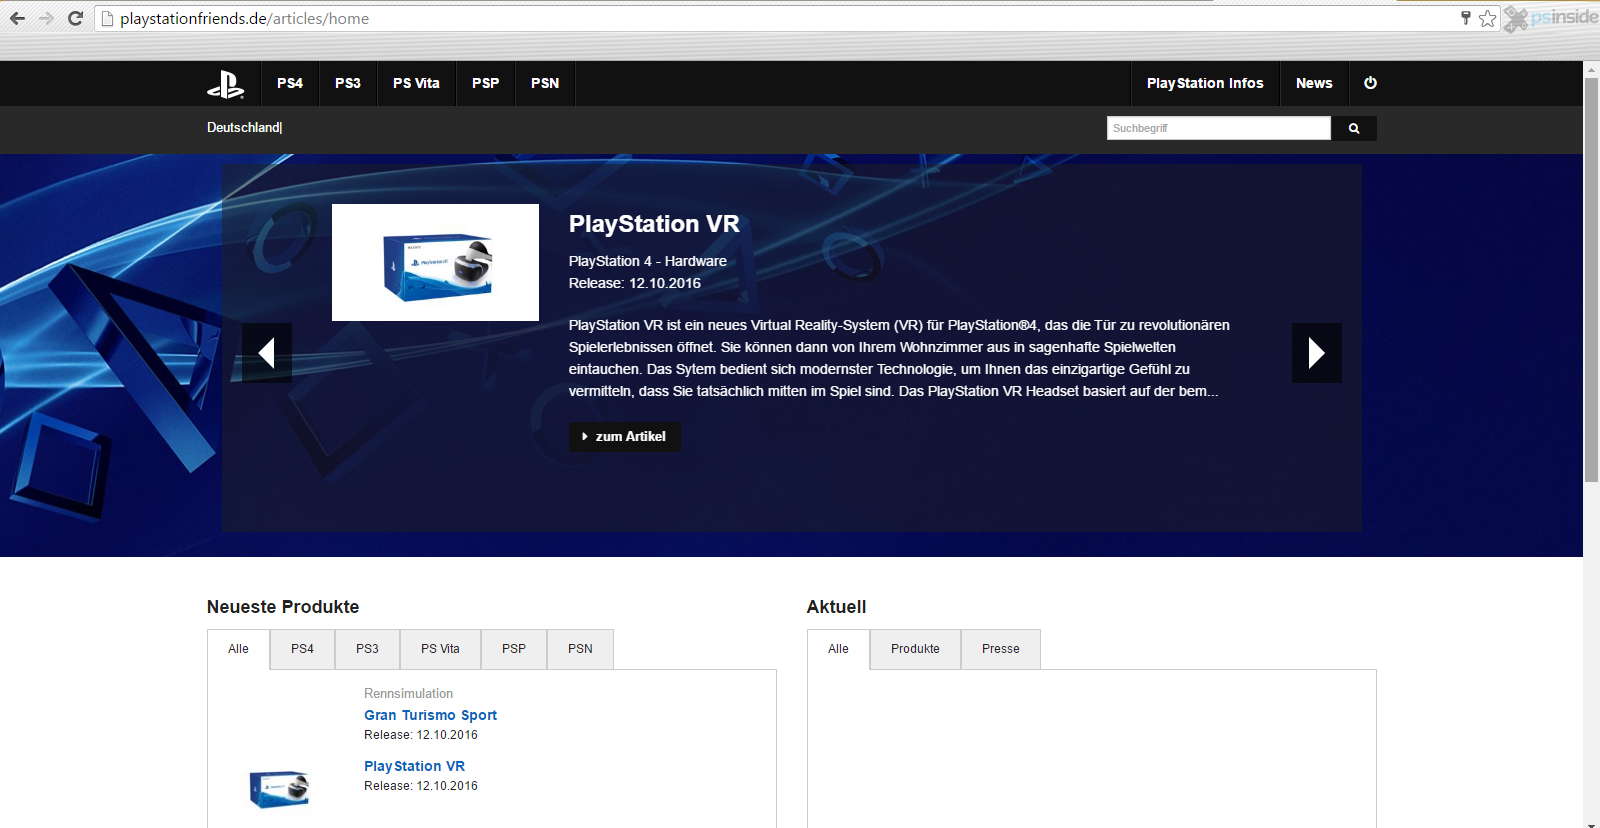 Report: PlayStation VR Release Date Leaked news - Mod DB